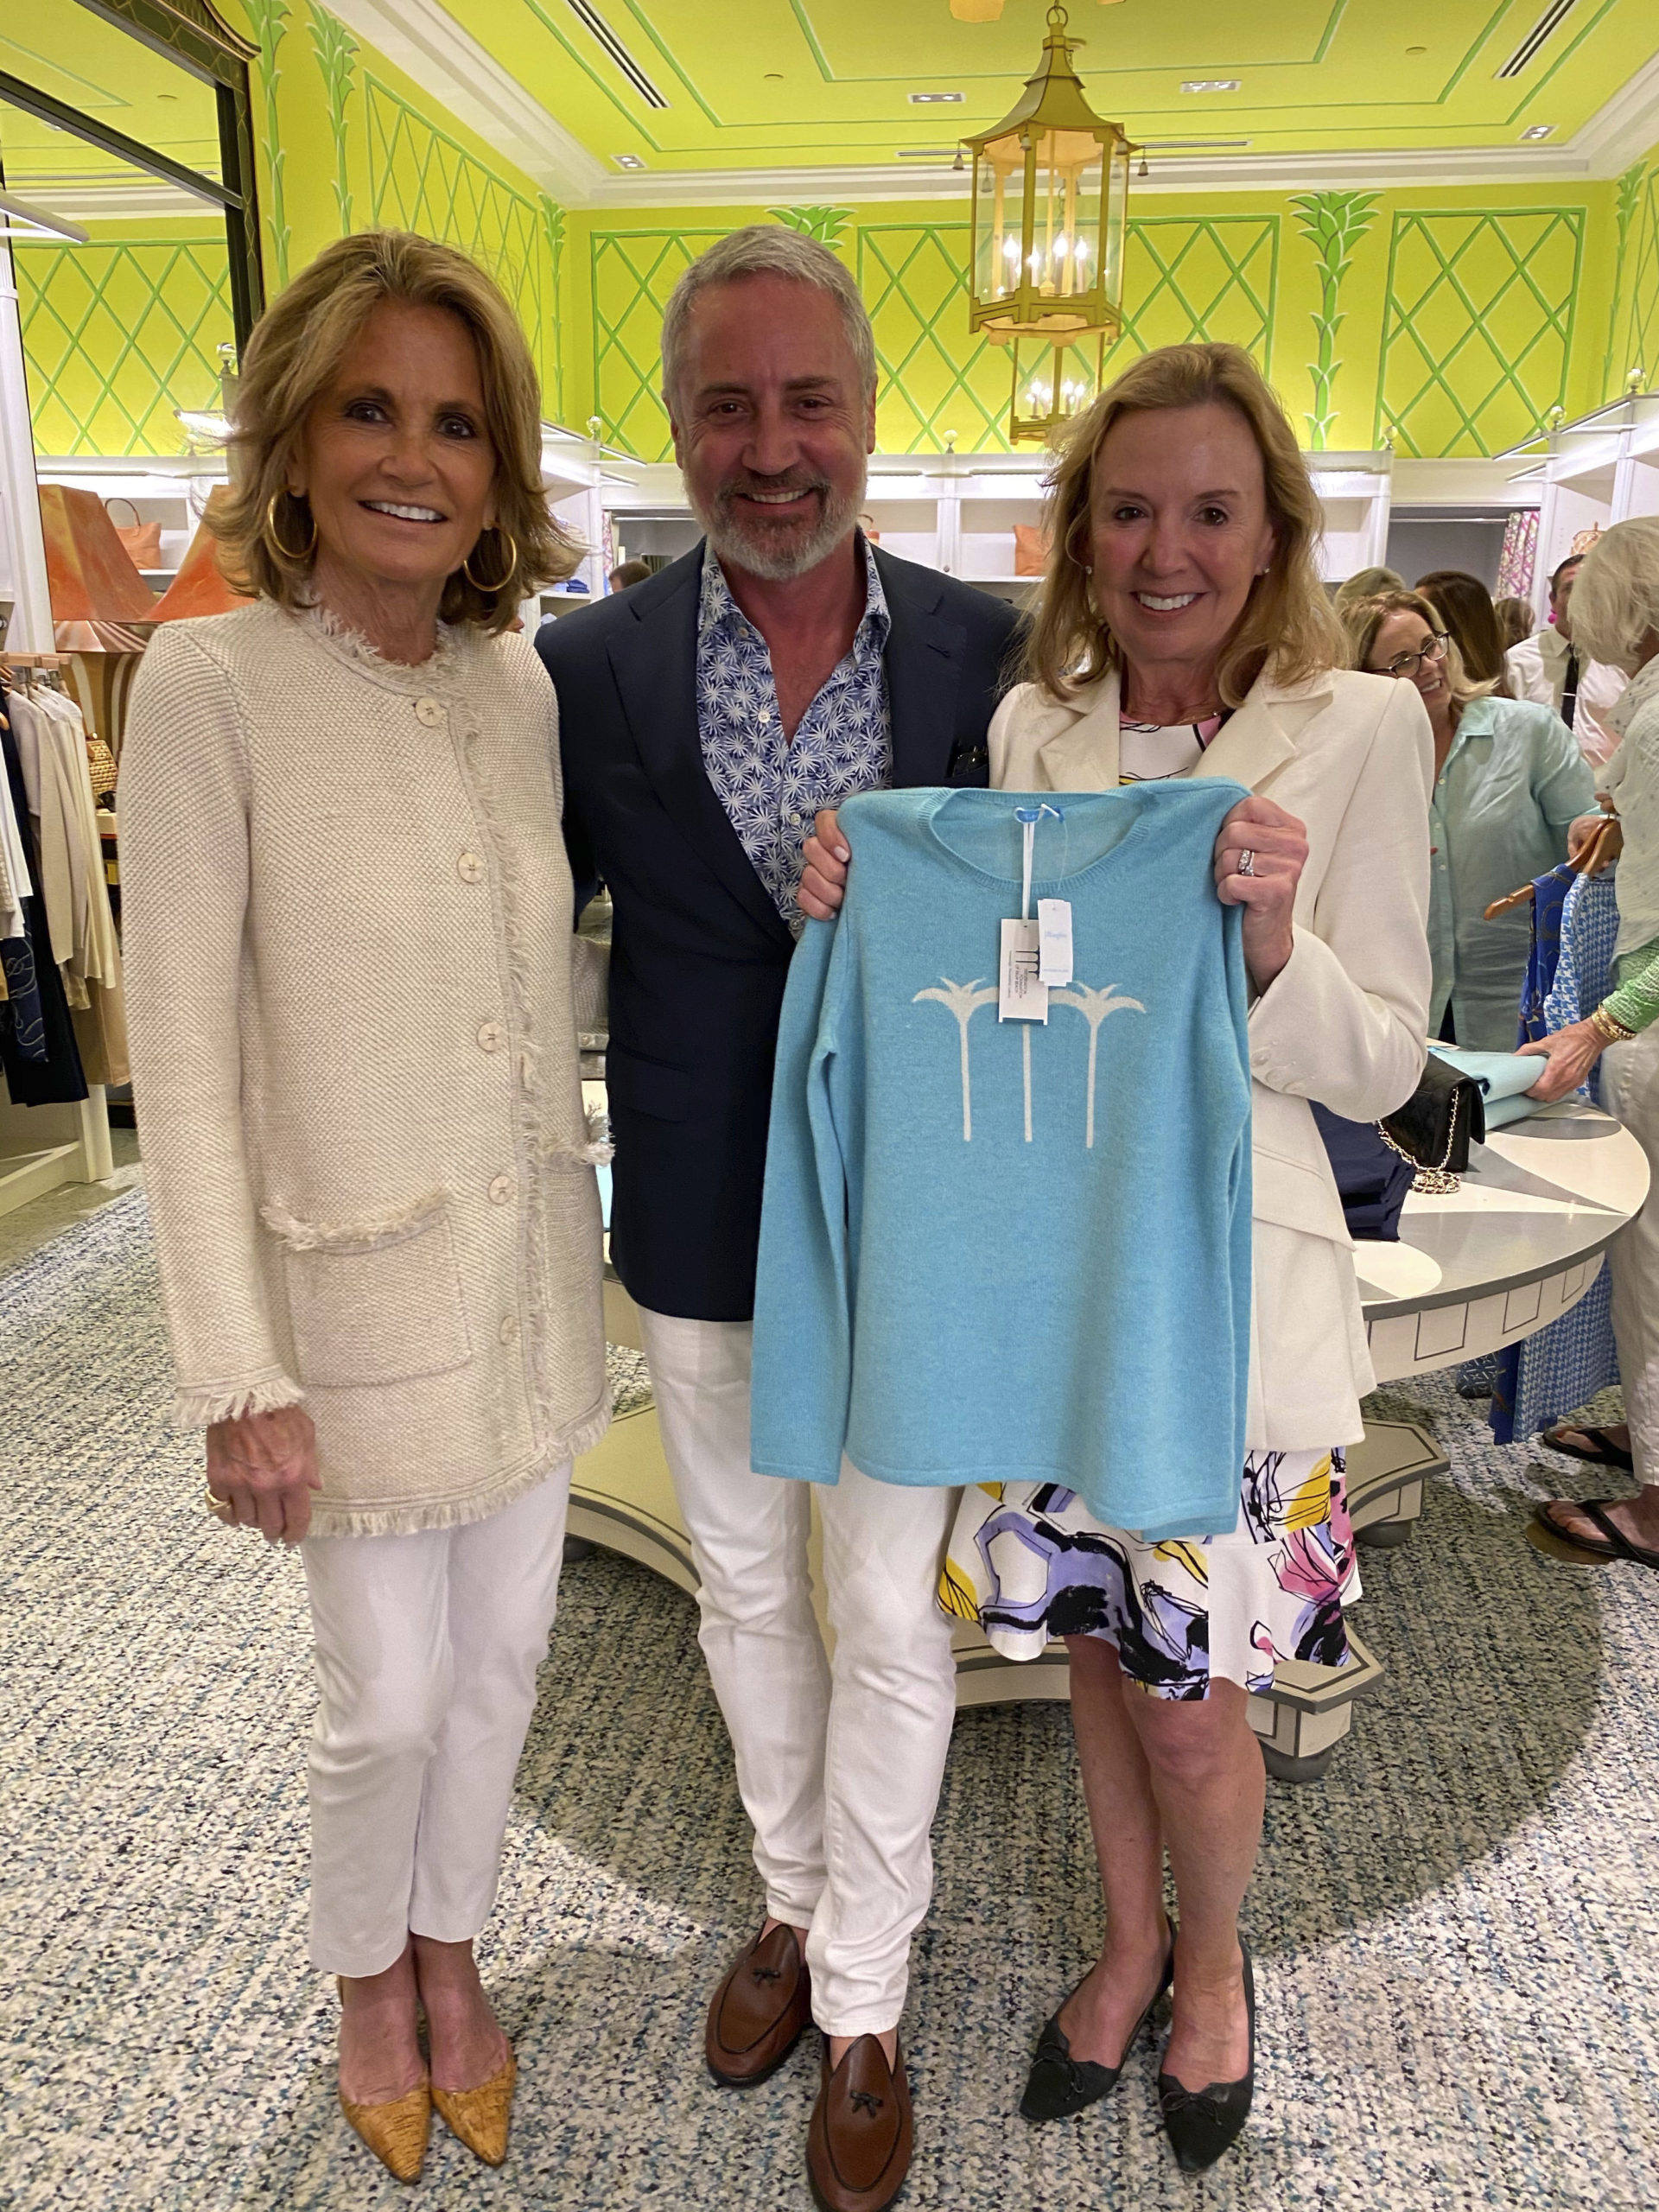 Grace Meigher, Jack Lynch and Susan Cowie at the J. McLaughlin store event.